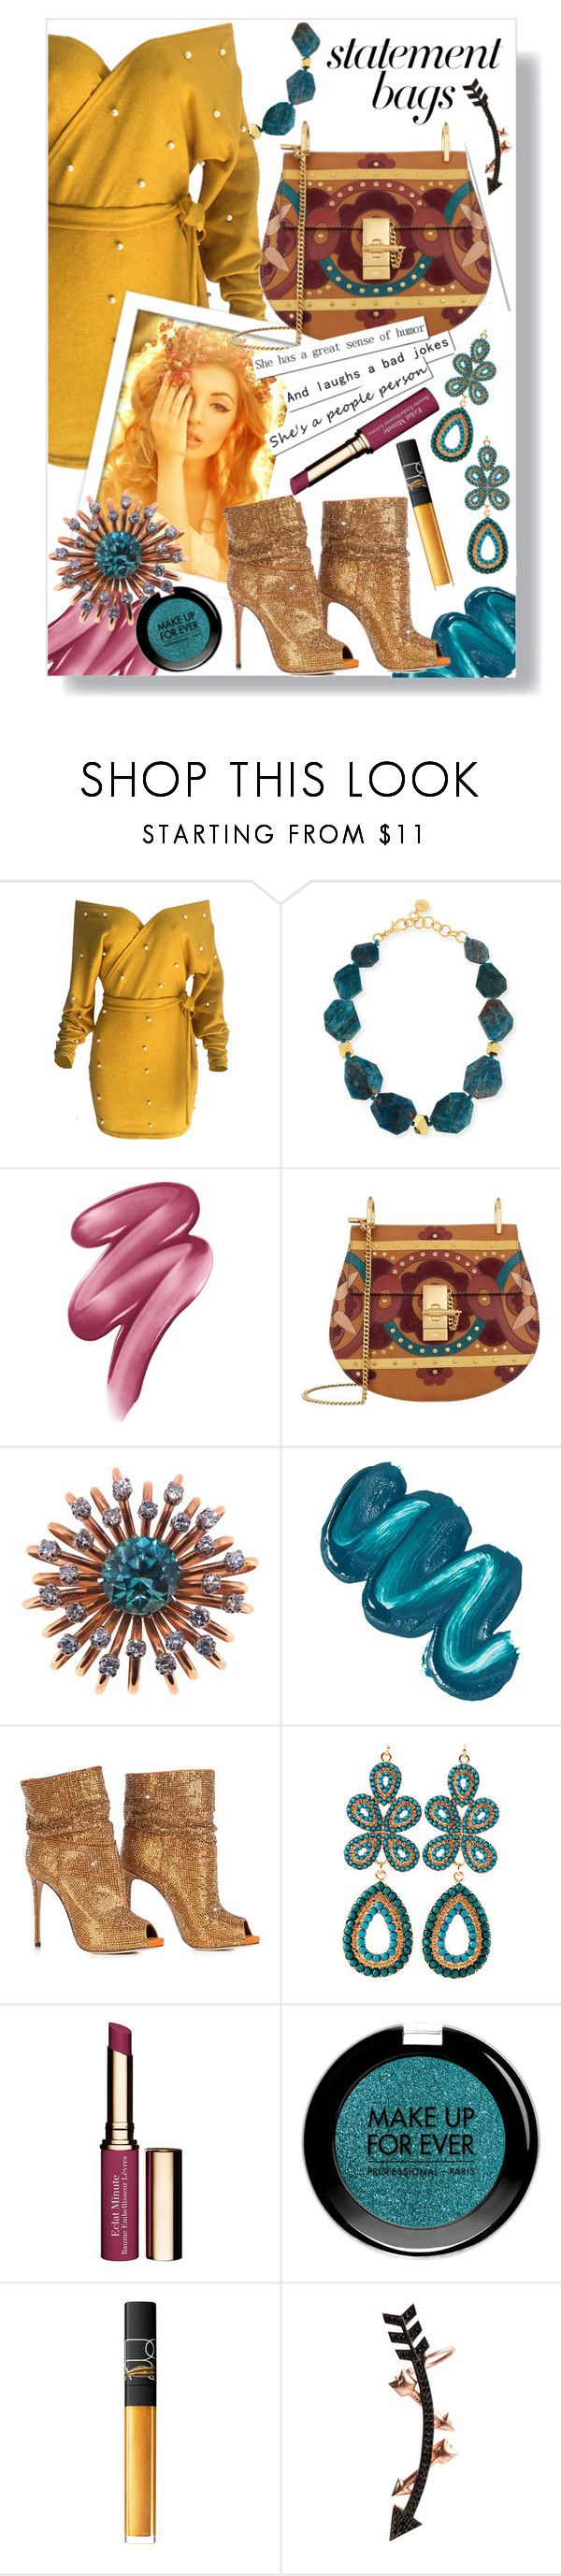 """Statement Bags"" by daklovesfashion ❤ liked on Polyvore featuring WithChic, Nest, Clinique, Chloé, Natural Blue, Mermaid Salon, Clarins, MAKE UP FOR EVER, NARS Cosmetics and Wild Hearts"